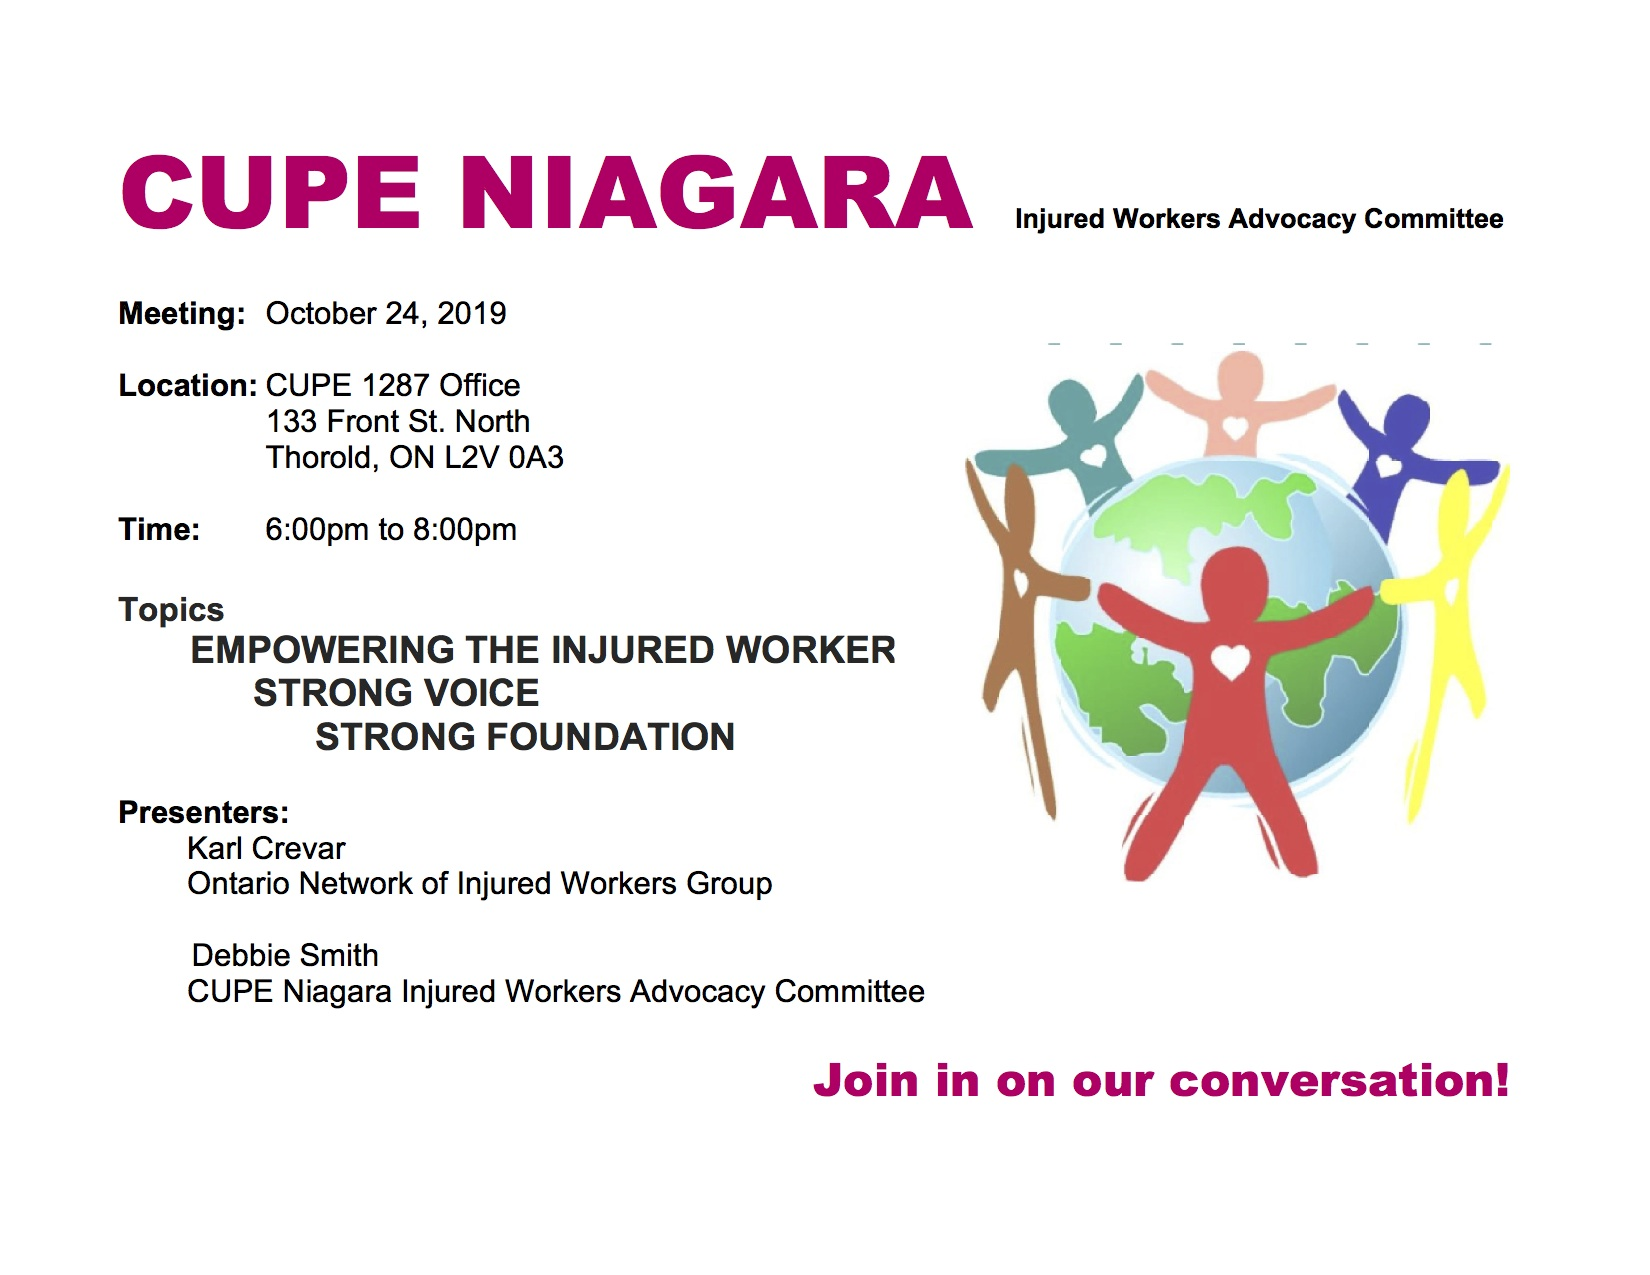 Empowering Injured Workers event @ CUPE 1287 Office